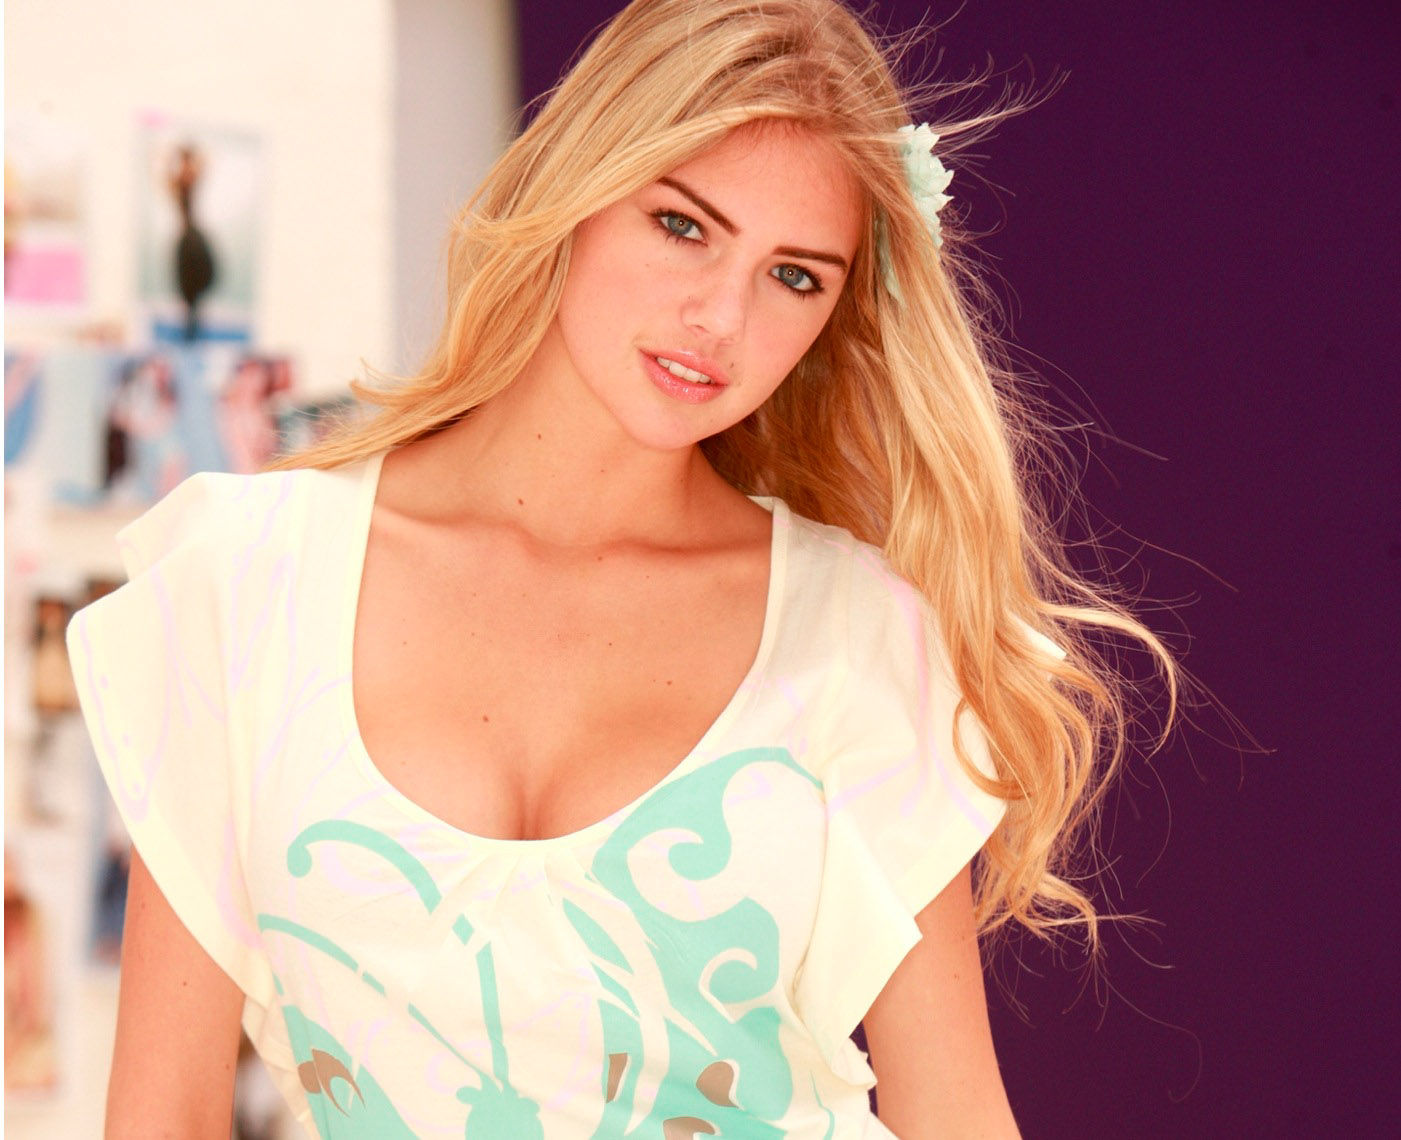 kate-upton-first-modeling-photos-38